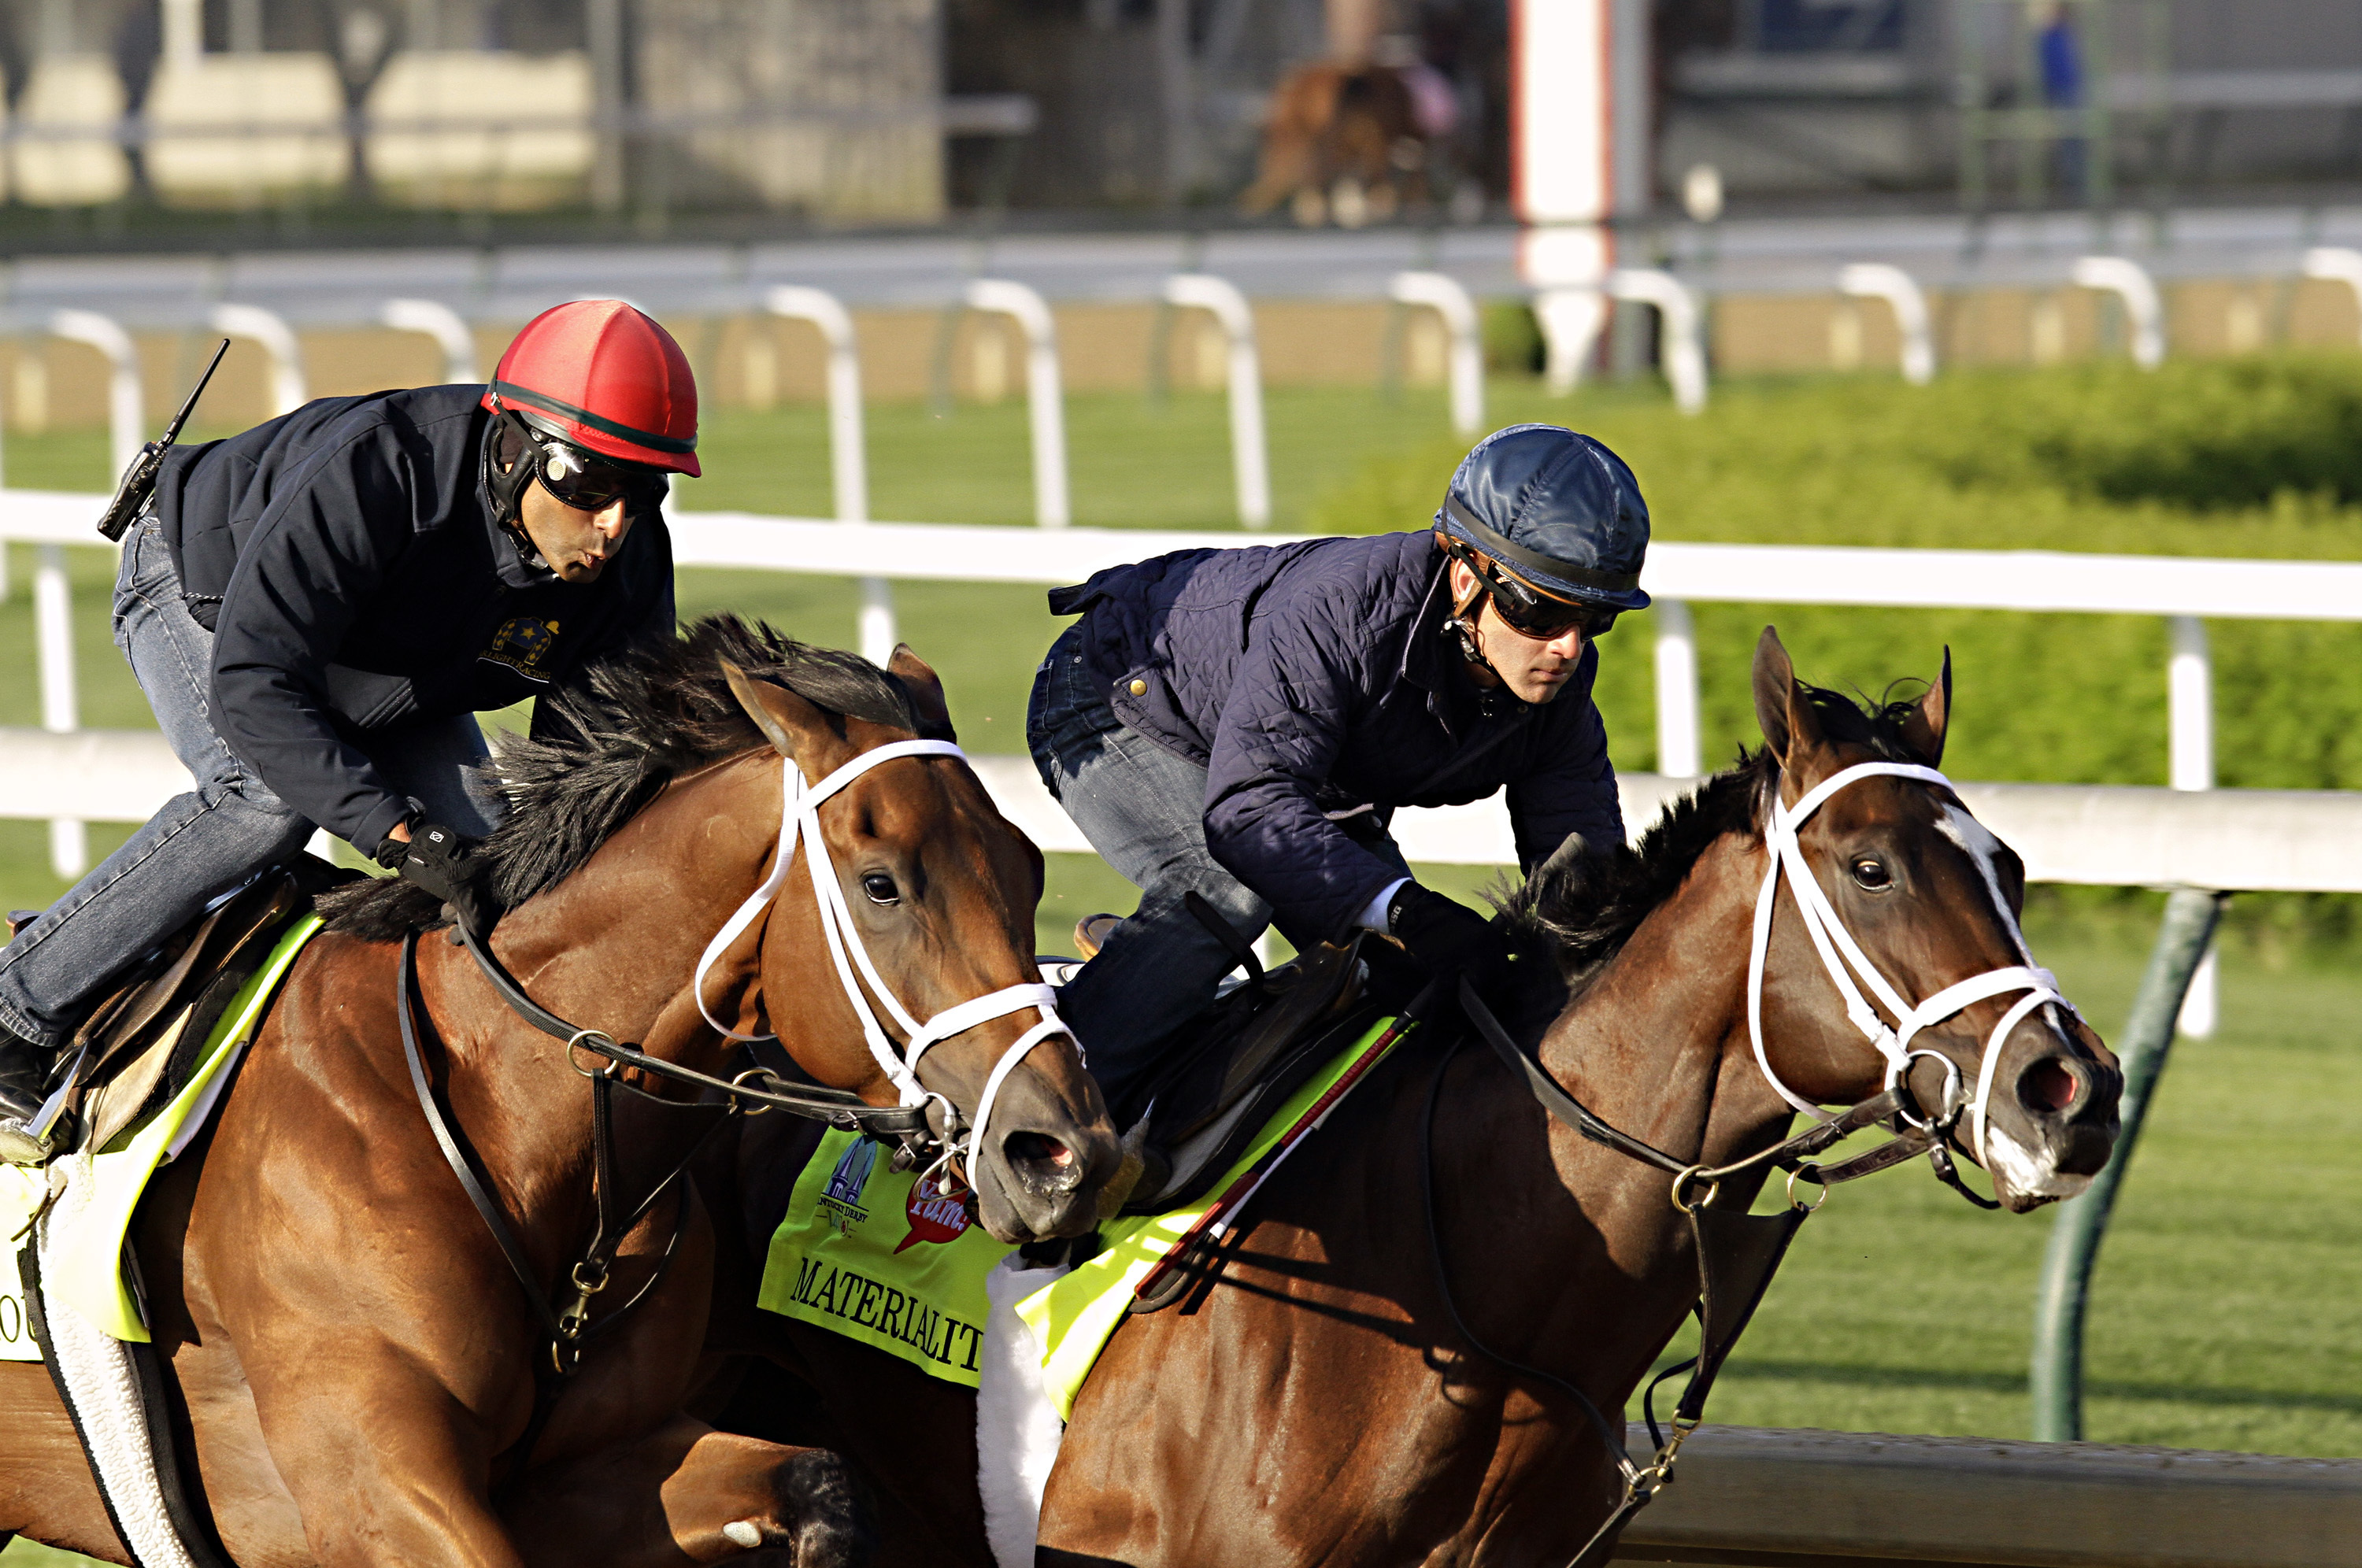 FILE - In this April 24, 2015, file photo, jockey Javier Castellano, right, gets Kentucky Derby hopeful Materiality in front of stablemate Itsaknockout, left, with exercise rider Ezequiel Perez, during a morning workout at Churchill Downs in Louisville, K